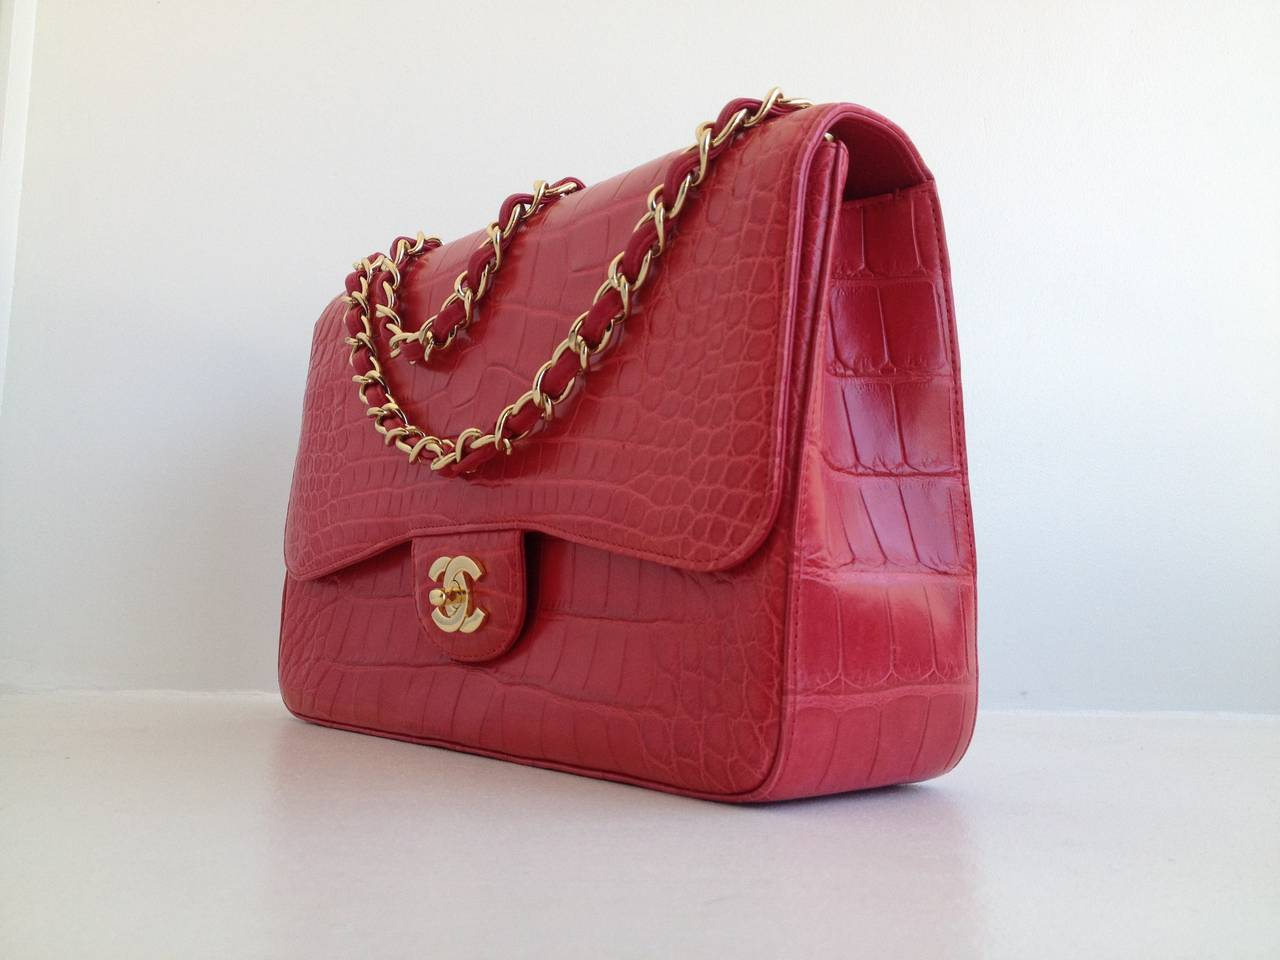 89137993d0c2 Nothing is more special than this iconic piece - the classic flap style is  so Chanel